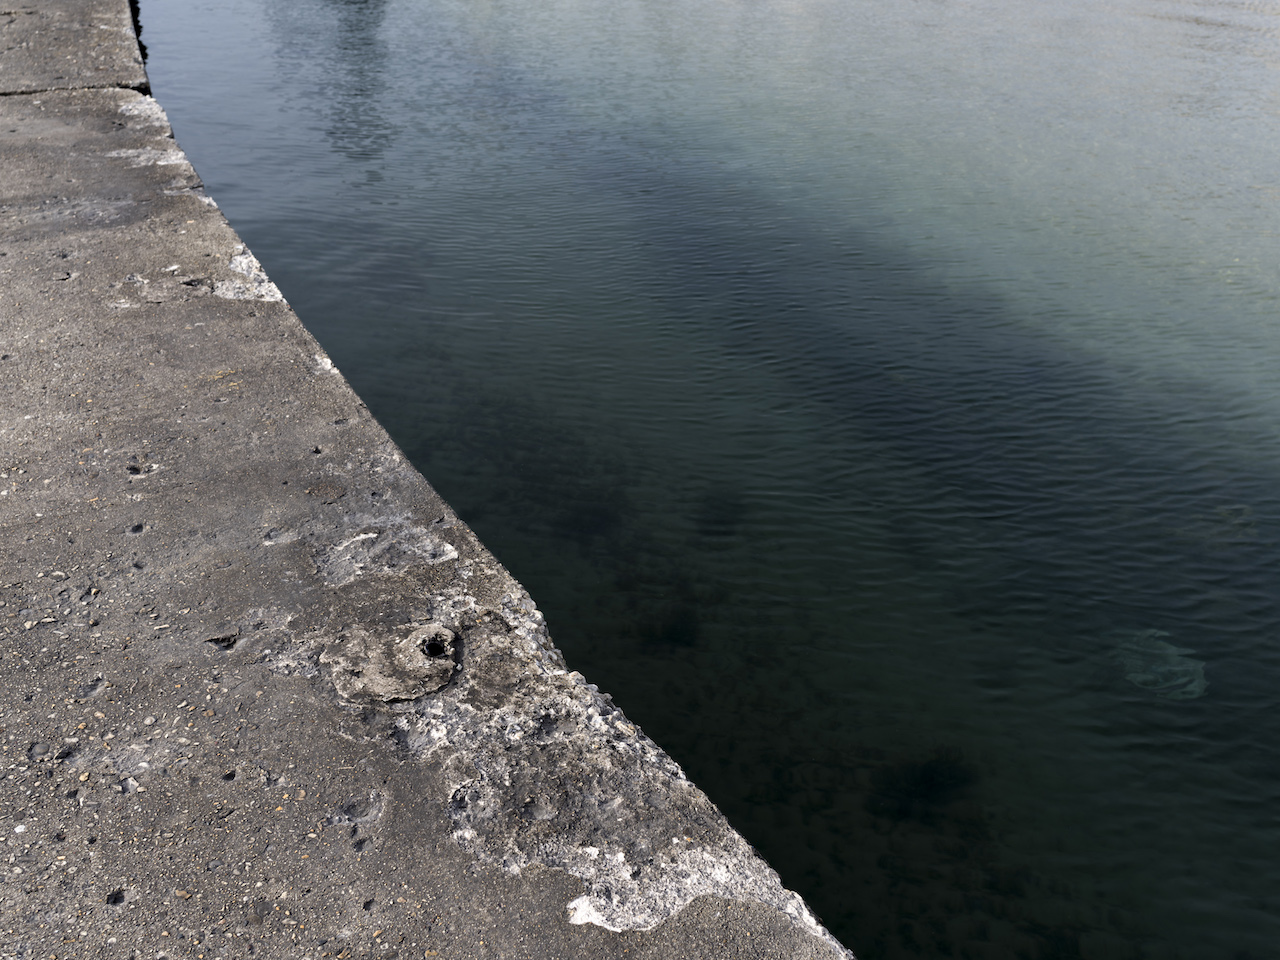 a small diagonal of concrete at waters edge, a water that is deep green